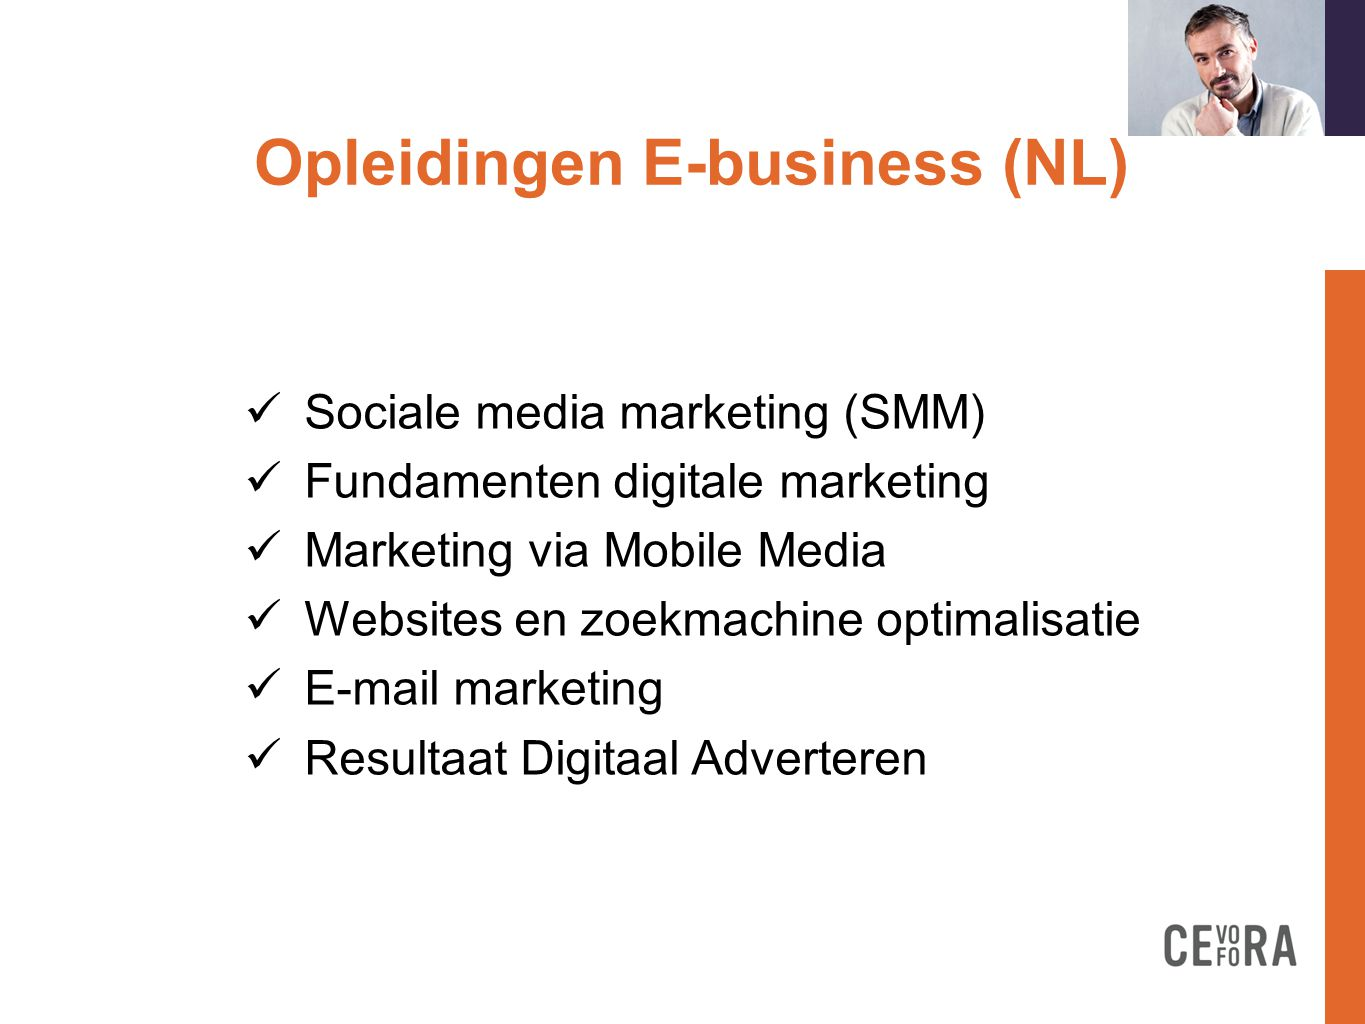 Opleidingen E-business (NL) formation doit  Sociale media marketing (SMM)  Fundamenten digitale marketing  Marketing via Mobile Media  Websites en zoekmachine optimalisatie  E-mail marketing  Resultaat Digitaal Adverteren